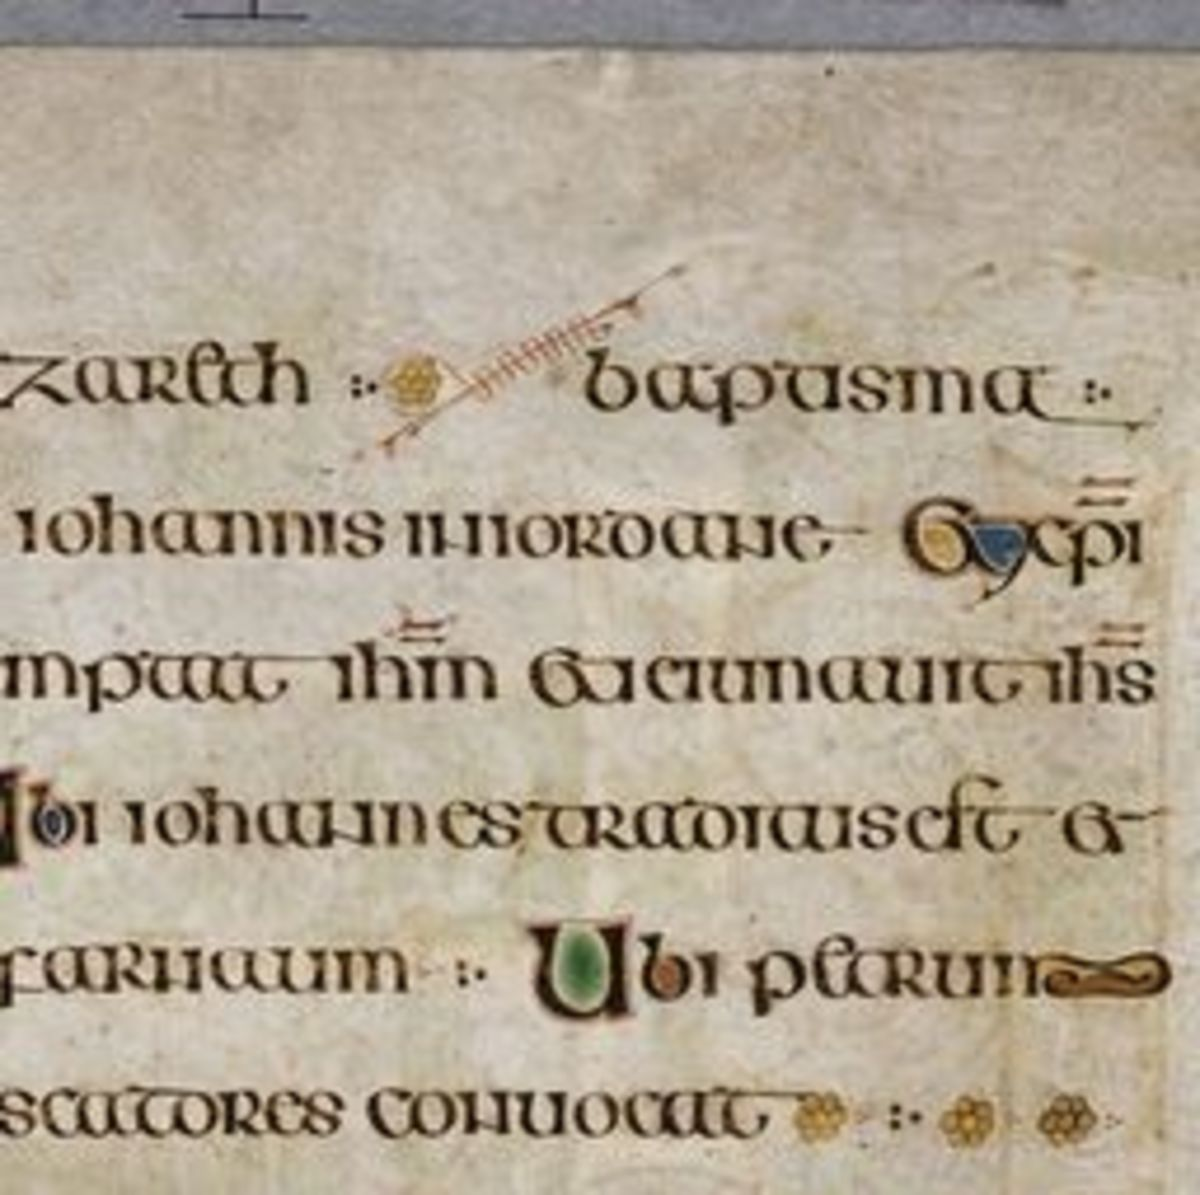 Page of text with illuminated letters at beginning of sentences and interlinear art.